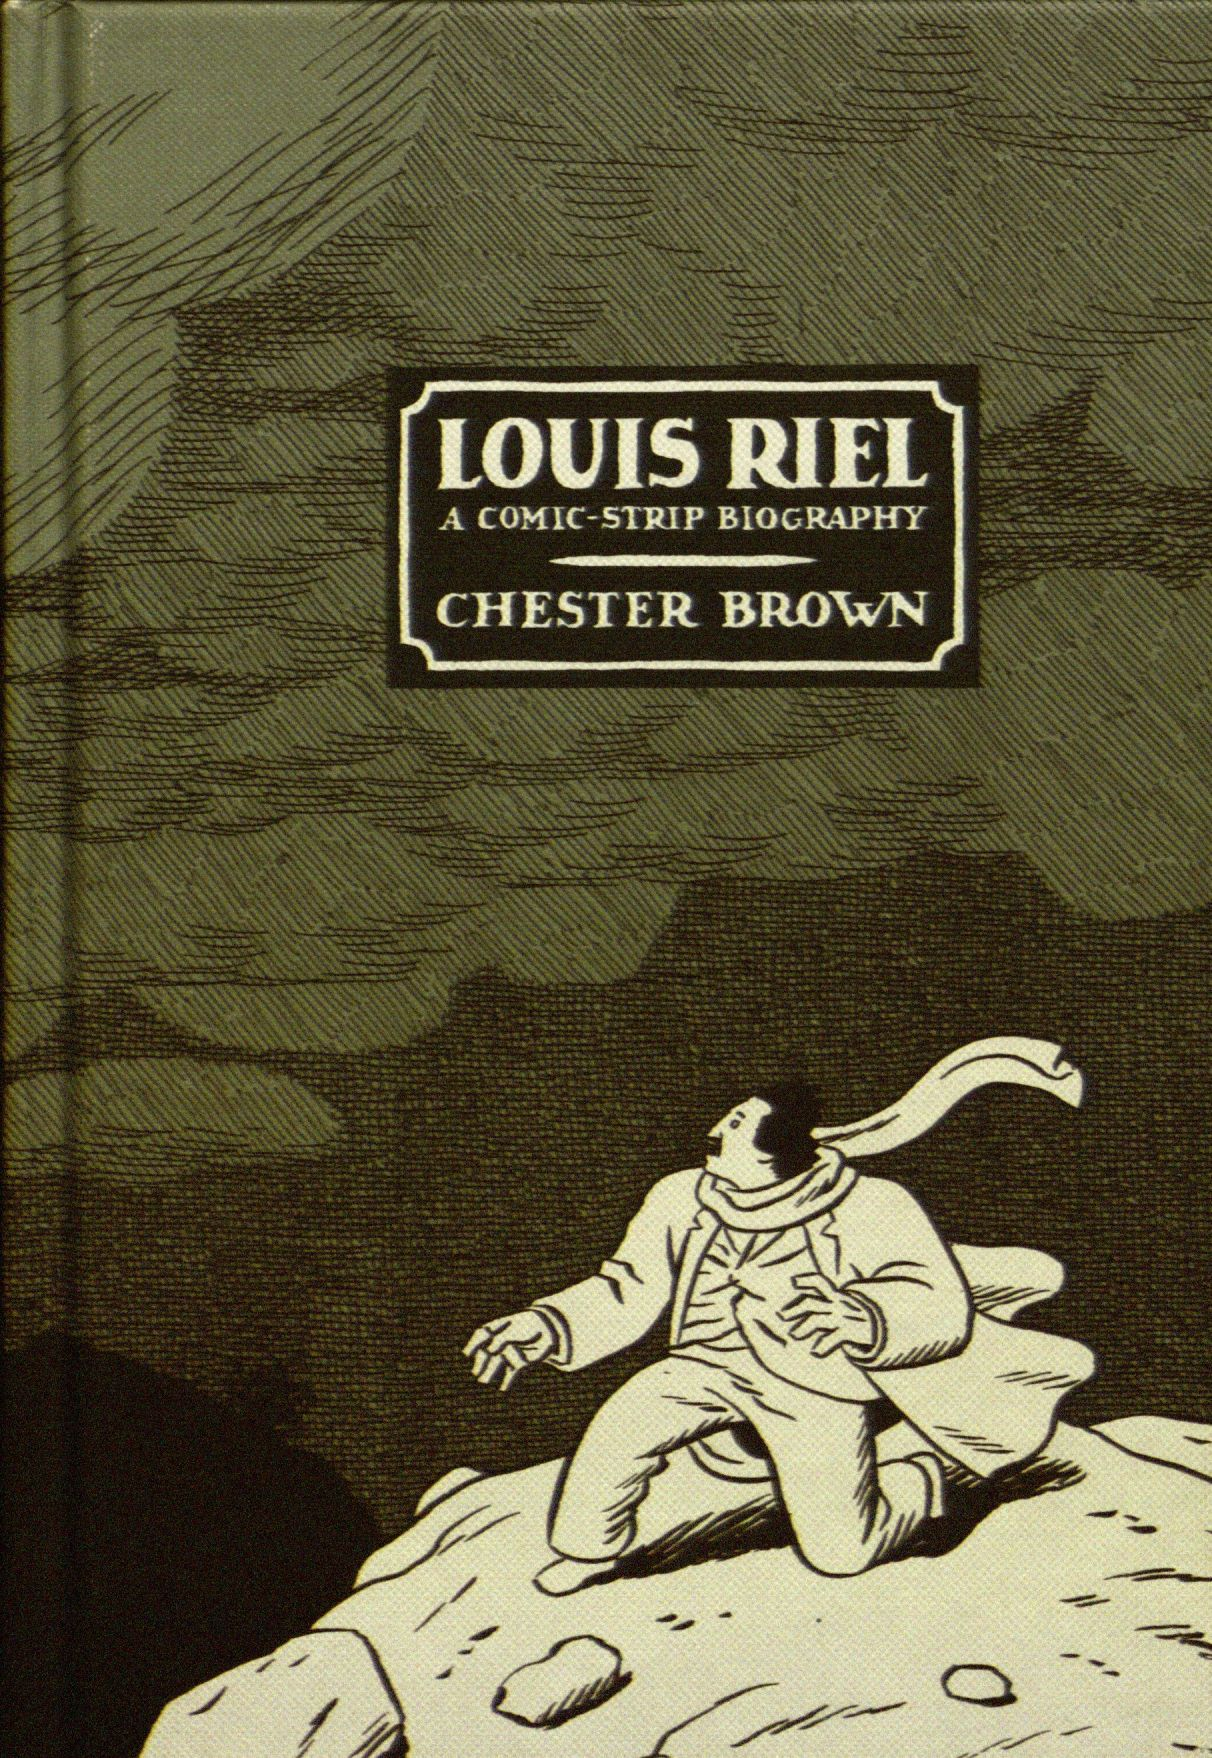 louis riel a father of confederation the metis struggle essay Louis riel essaysviewed by some as a savior, and others as a traitor, louis riel, the father of manitoba, nevertheless became the voice of the métis people during an unstable time in canadian history.